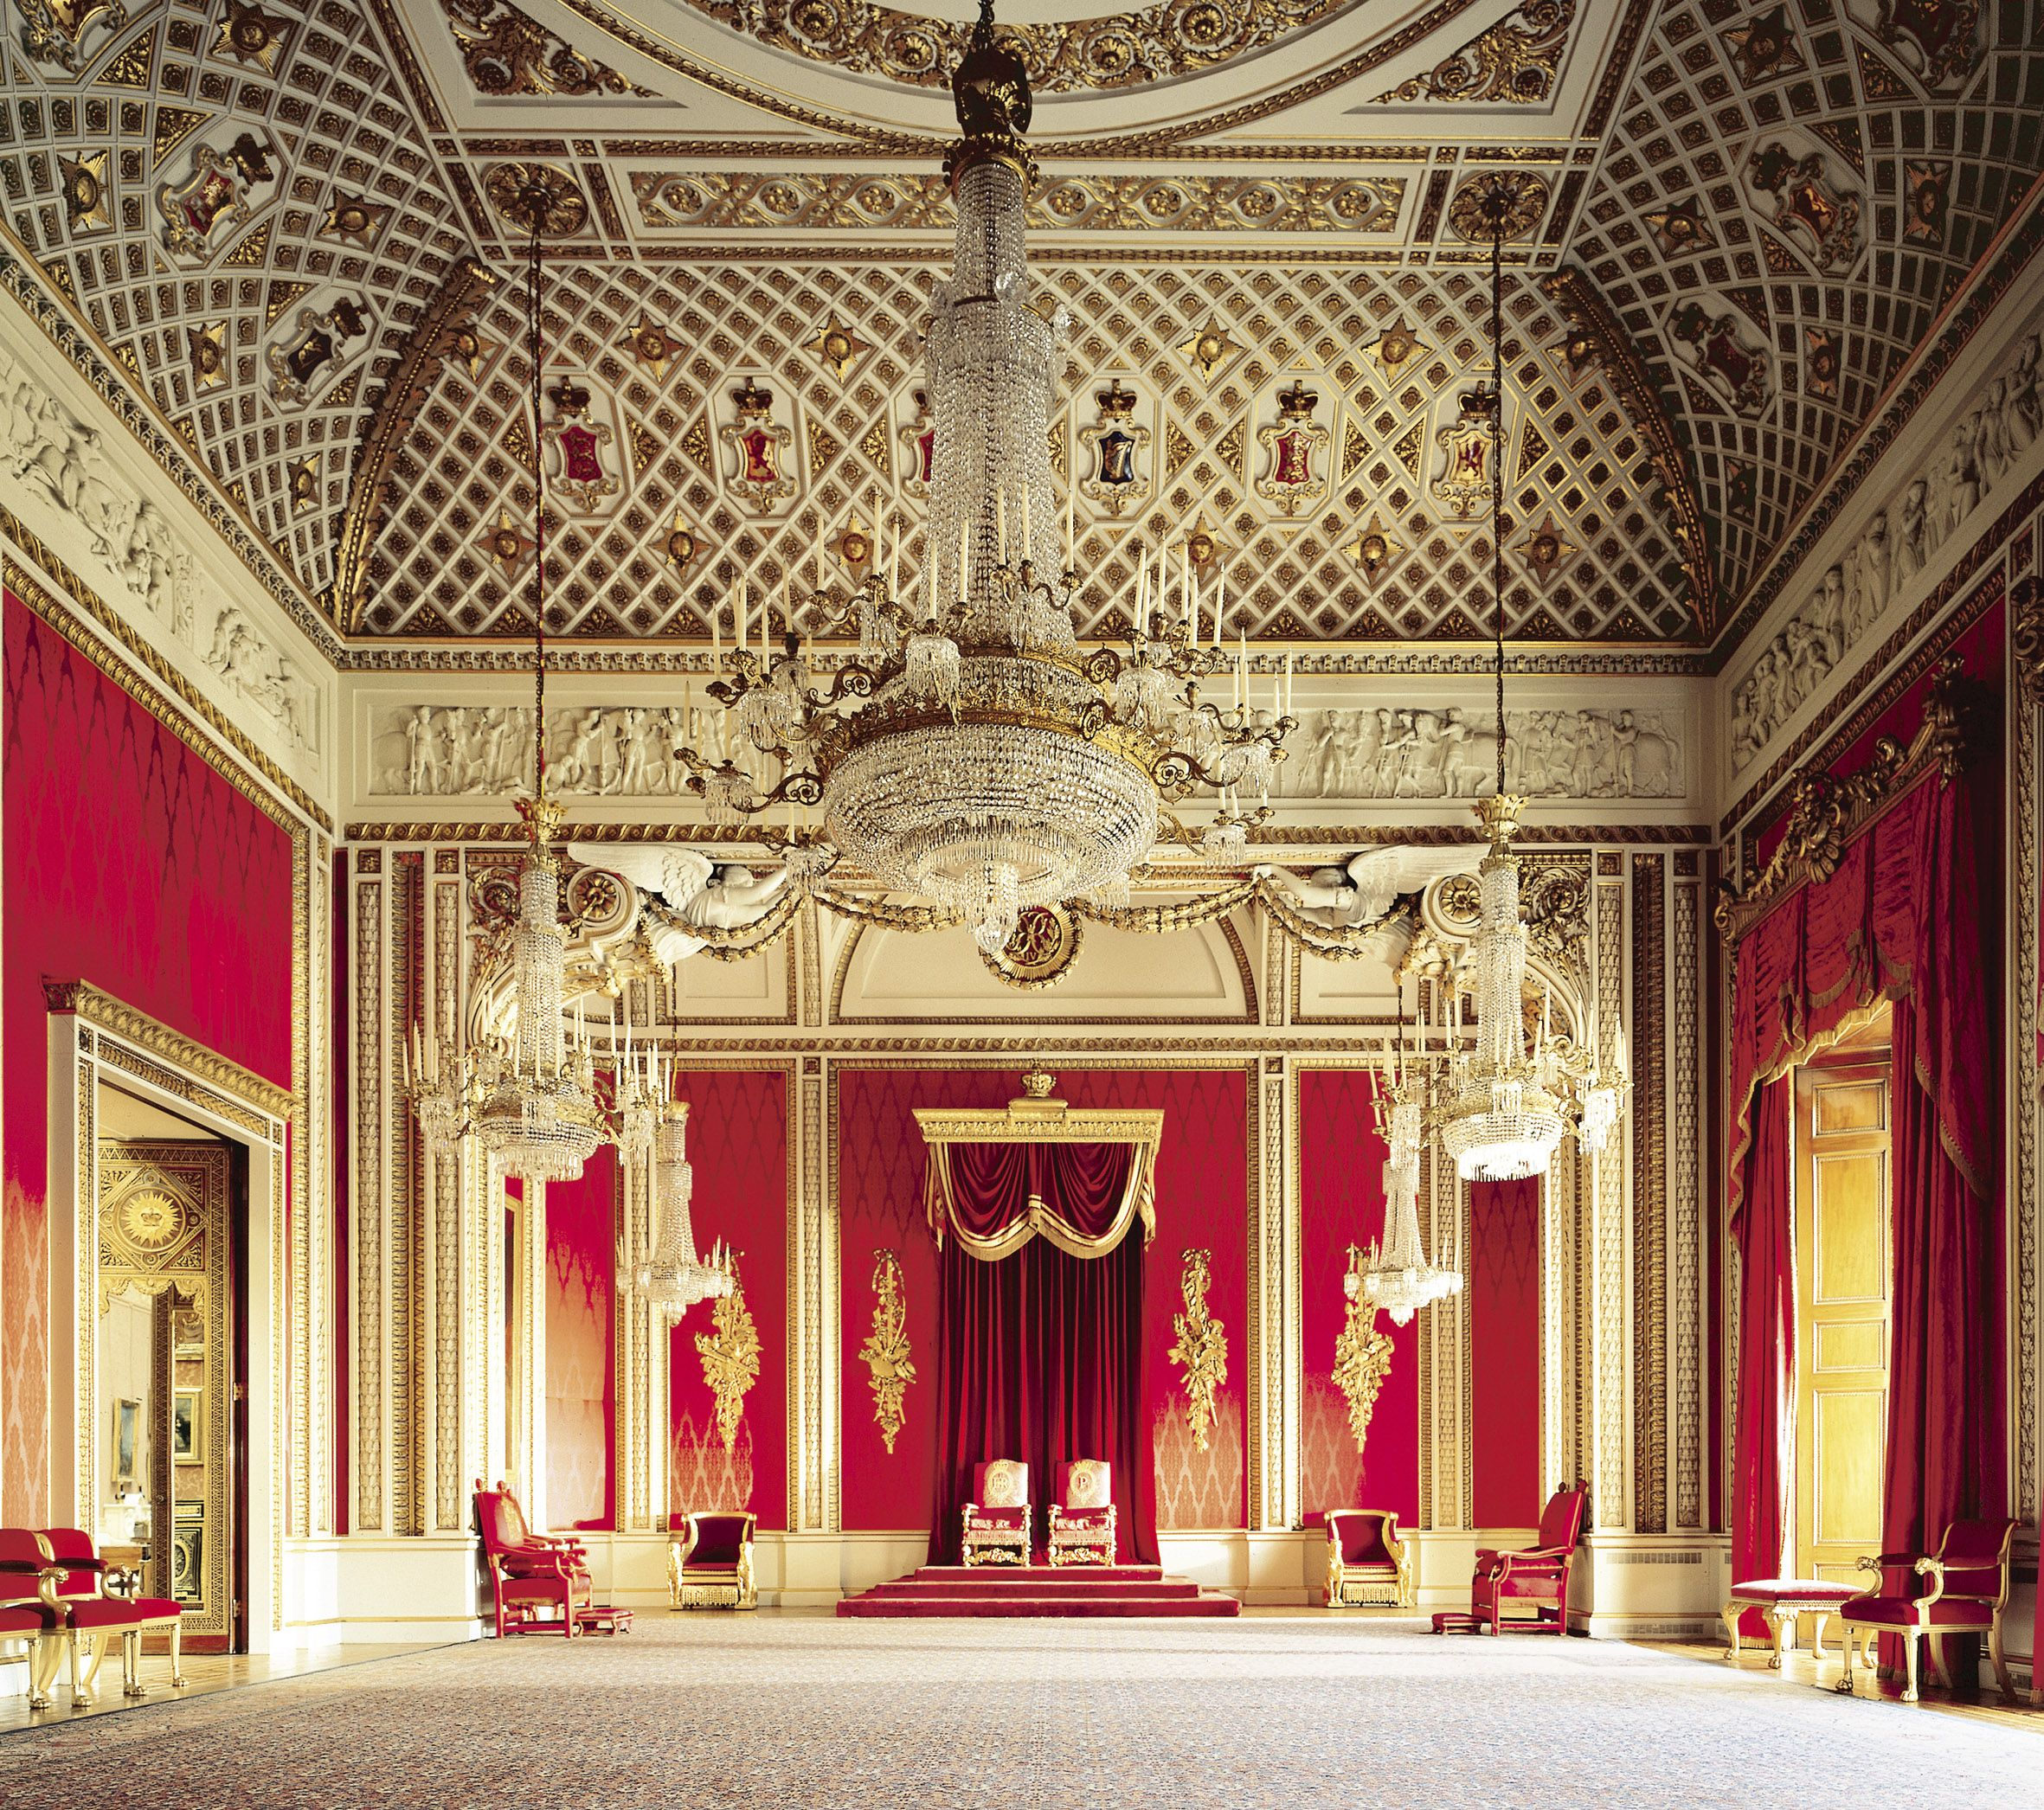 The throne room at buckingham palace this room was so magnificent and beautiful i